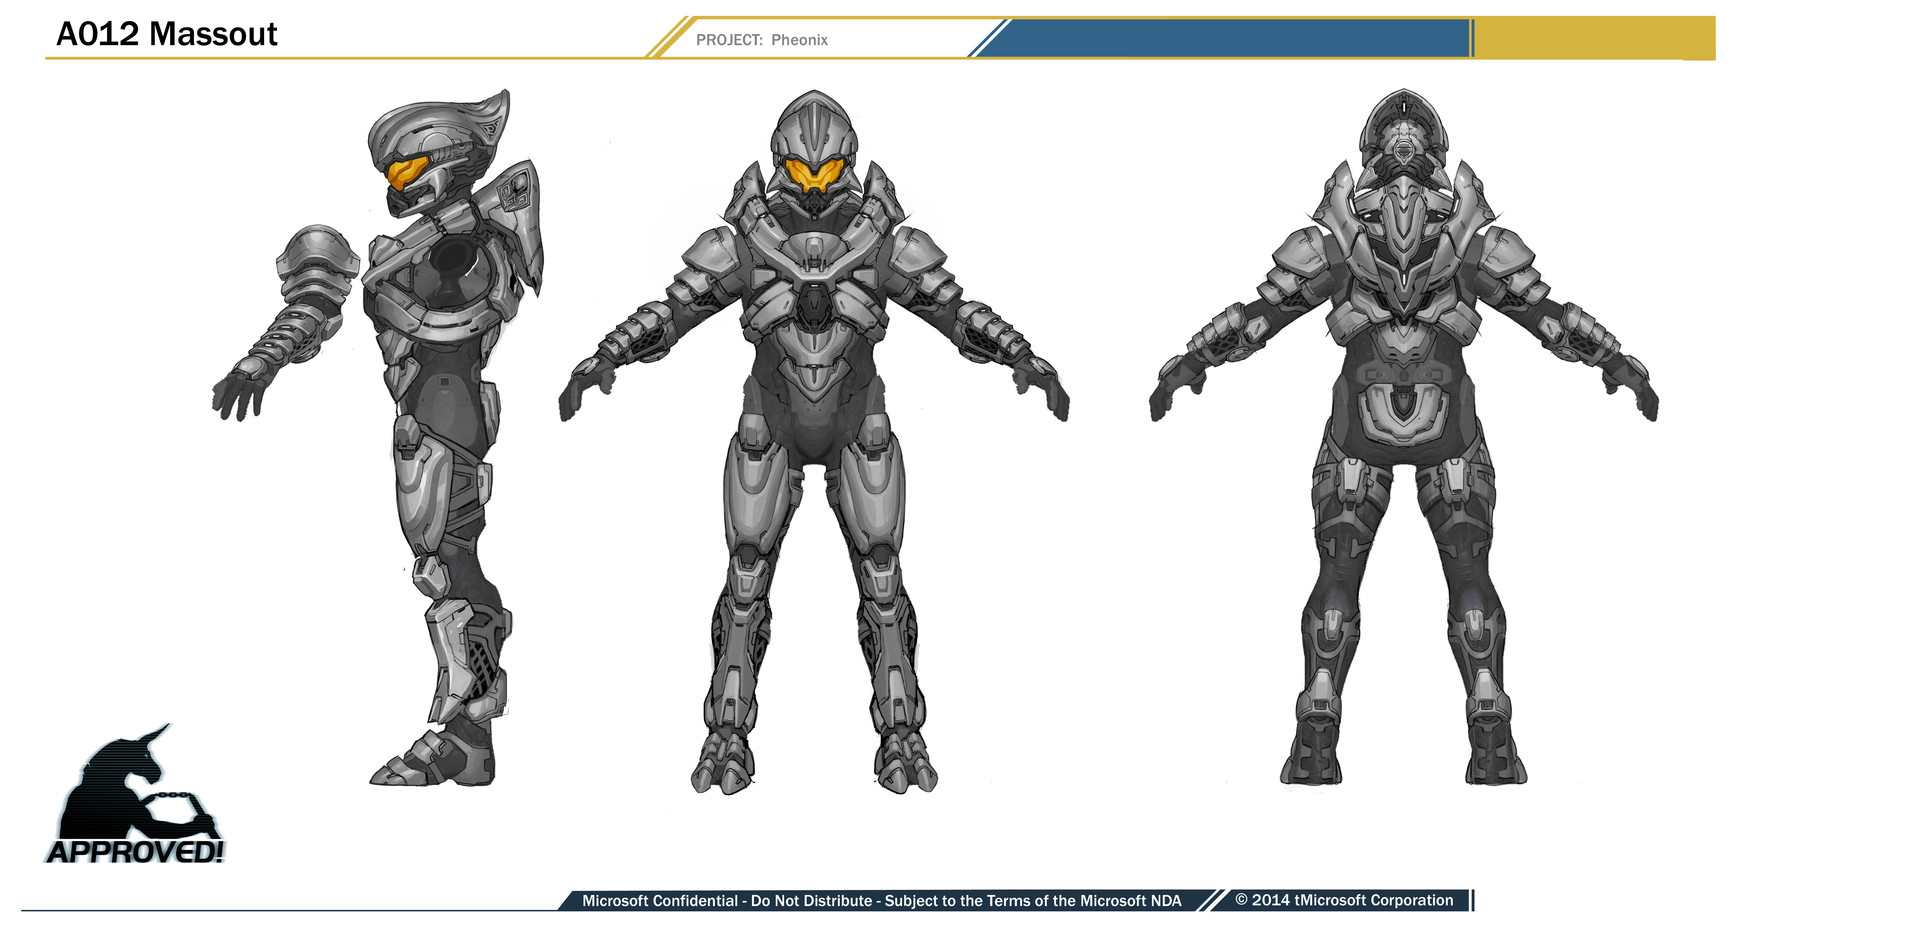 kory-hubbell-mp-armors-final-halo2-arbiter-massout.jpg